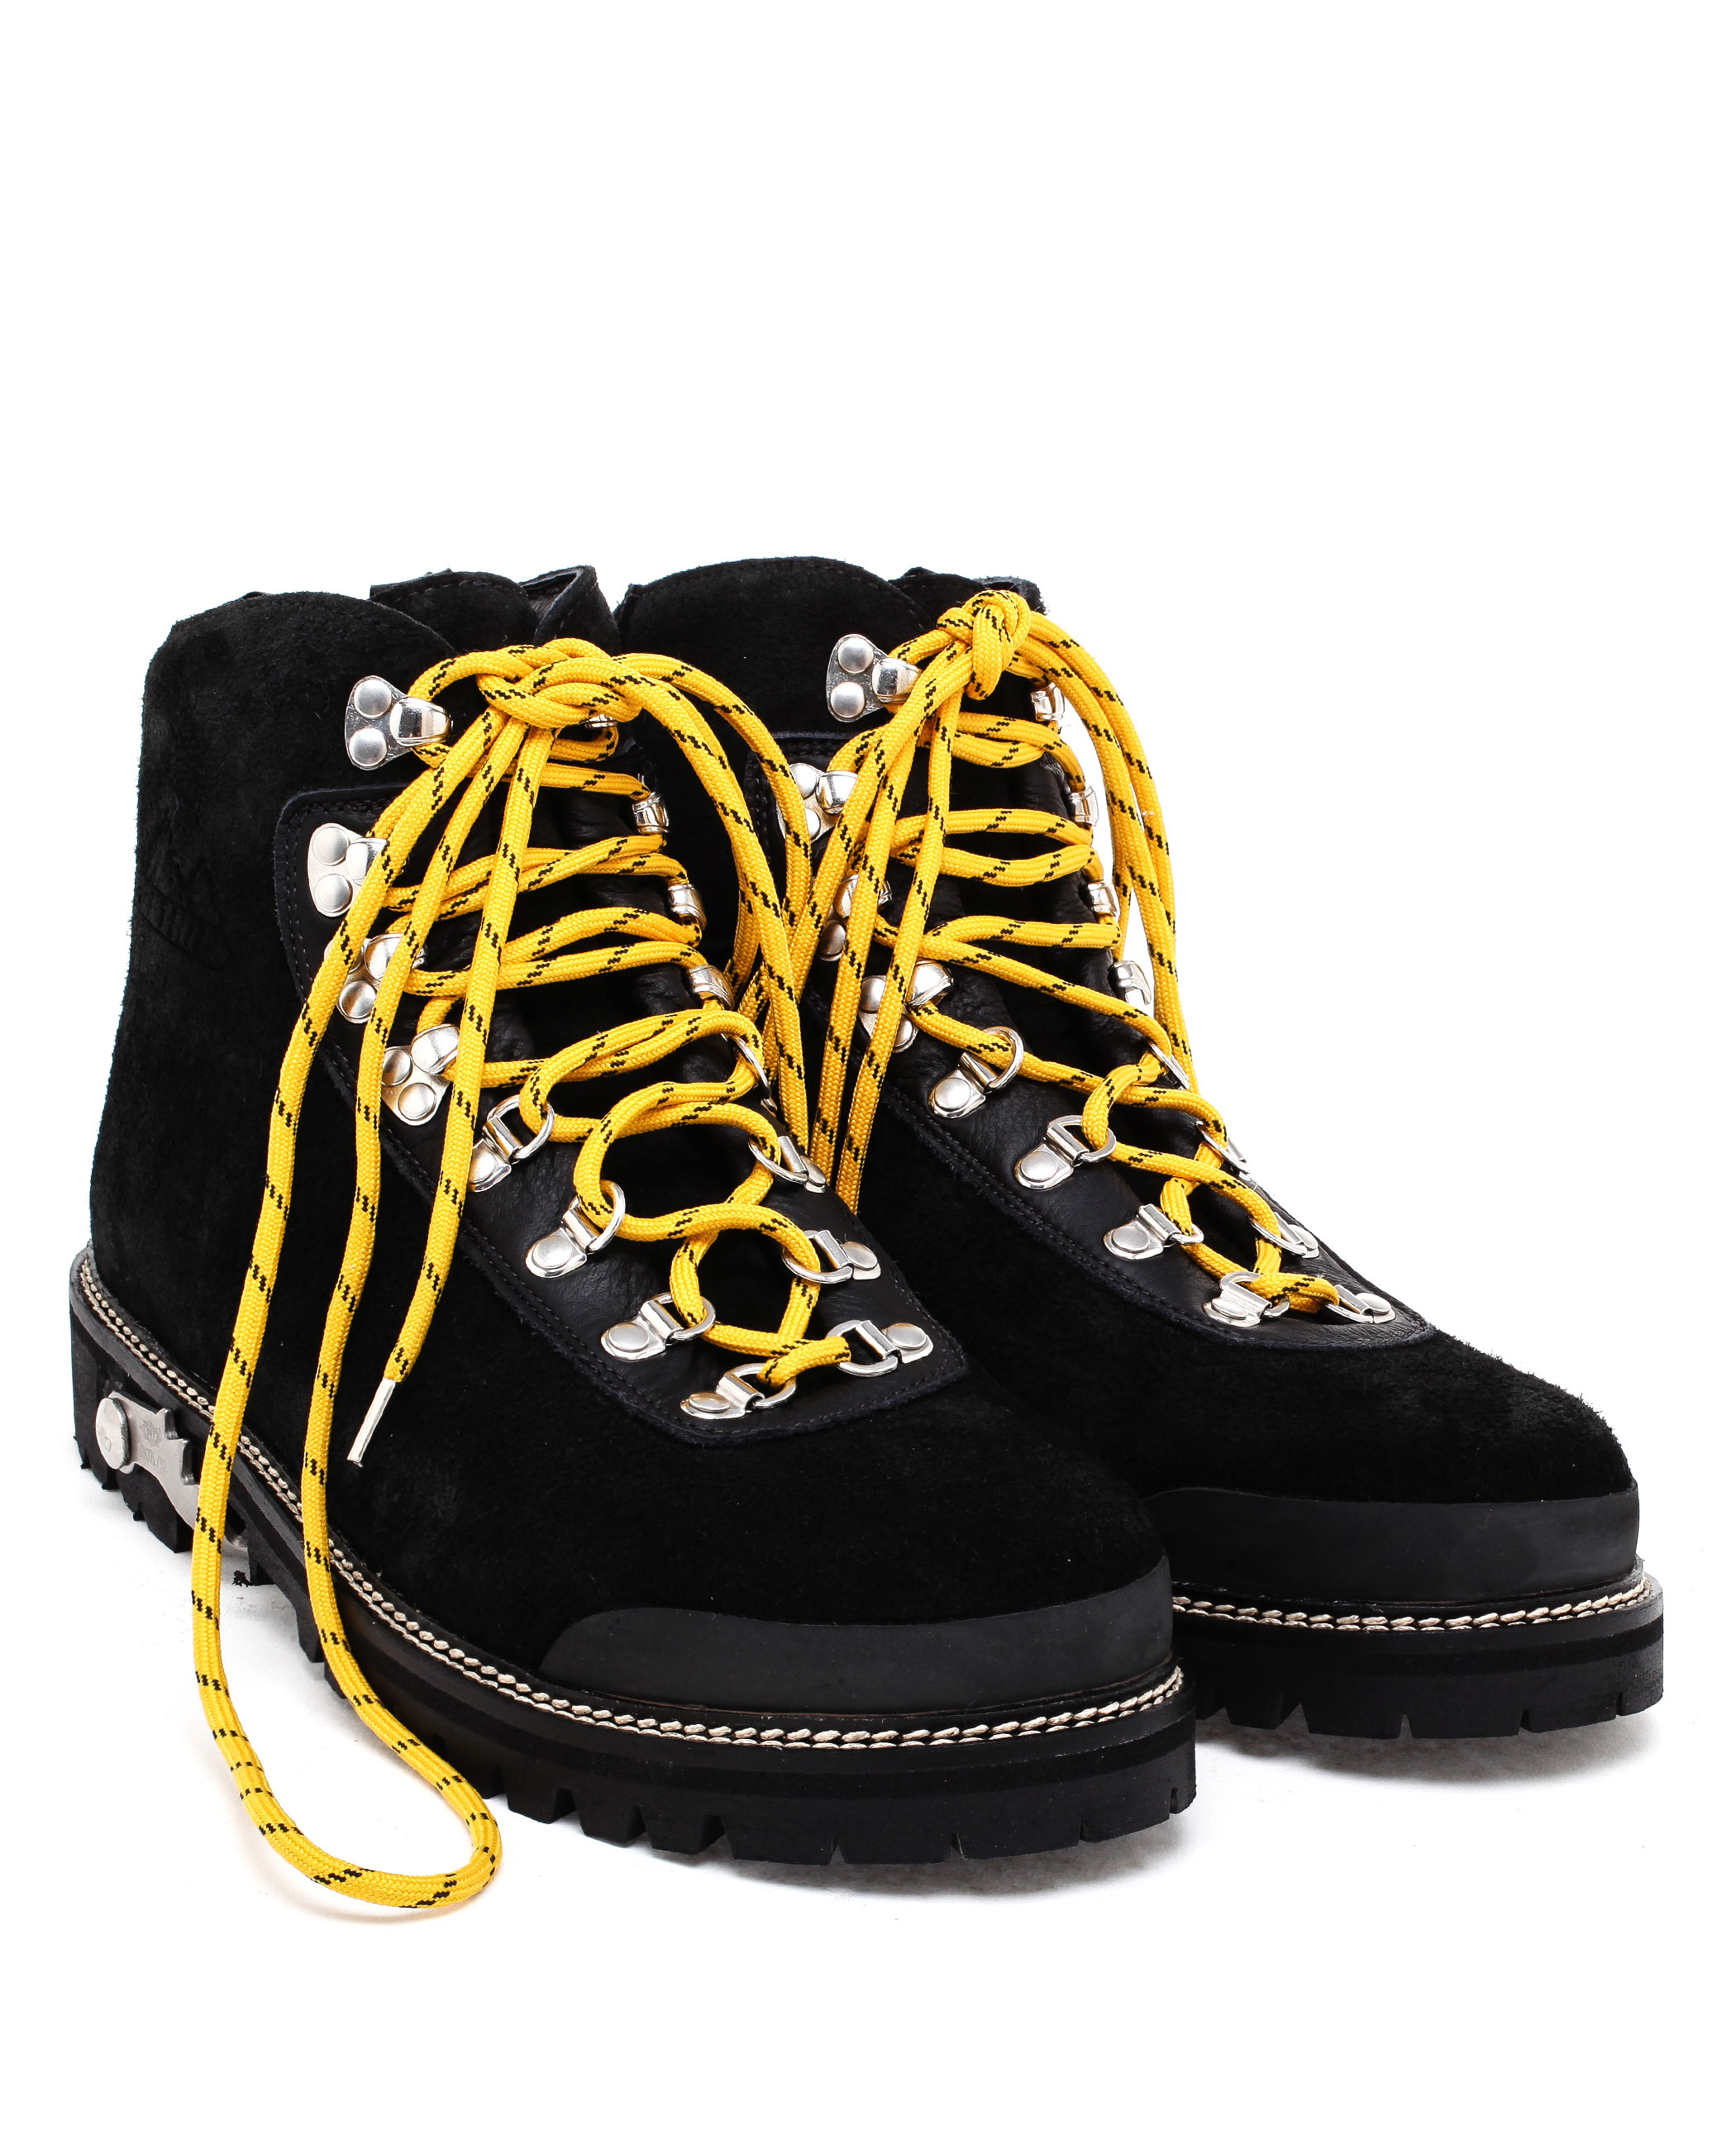 2070746f9c3 Off-White c/o Virgil Abloh Black Suede Hiking Boots